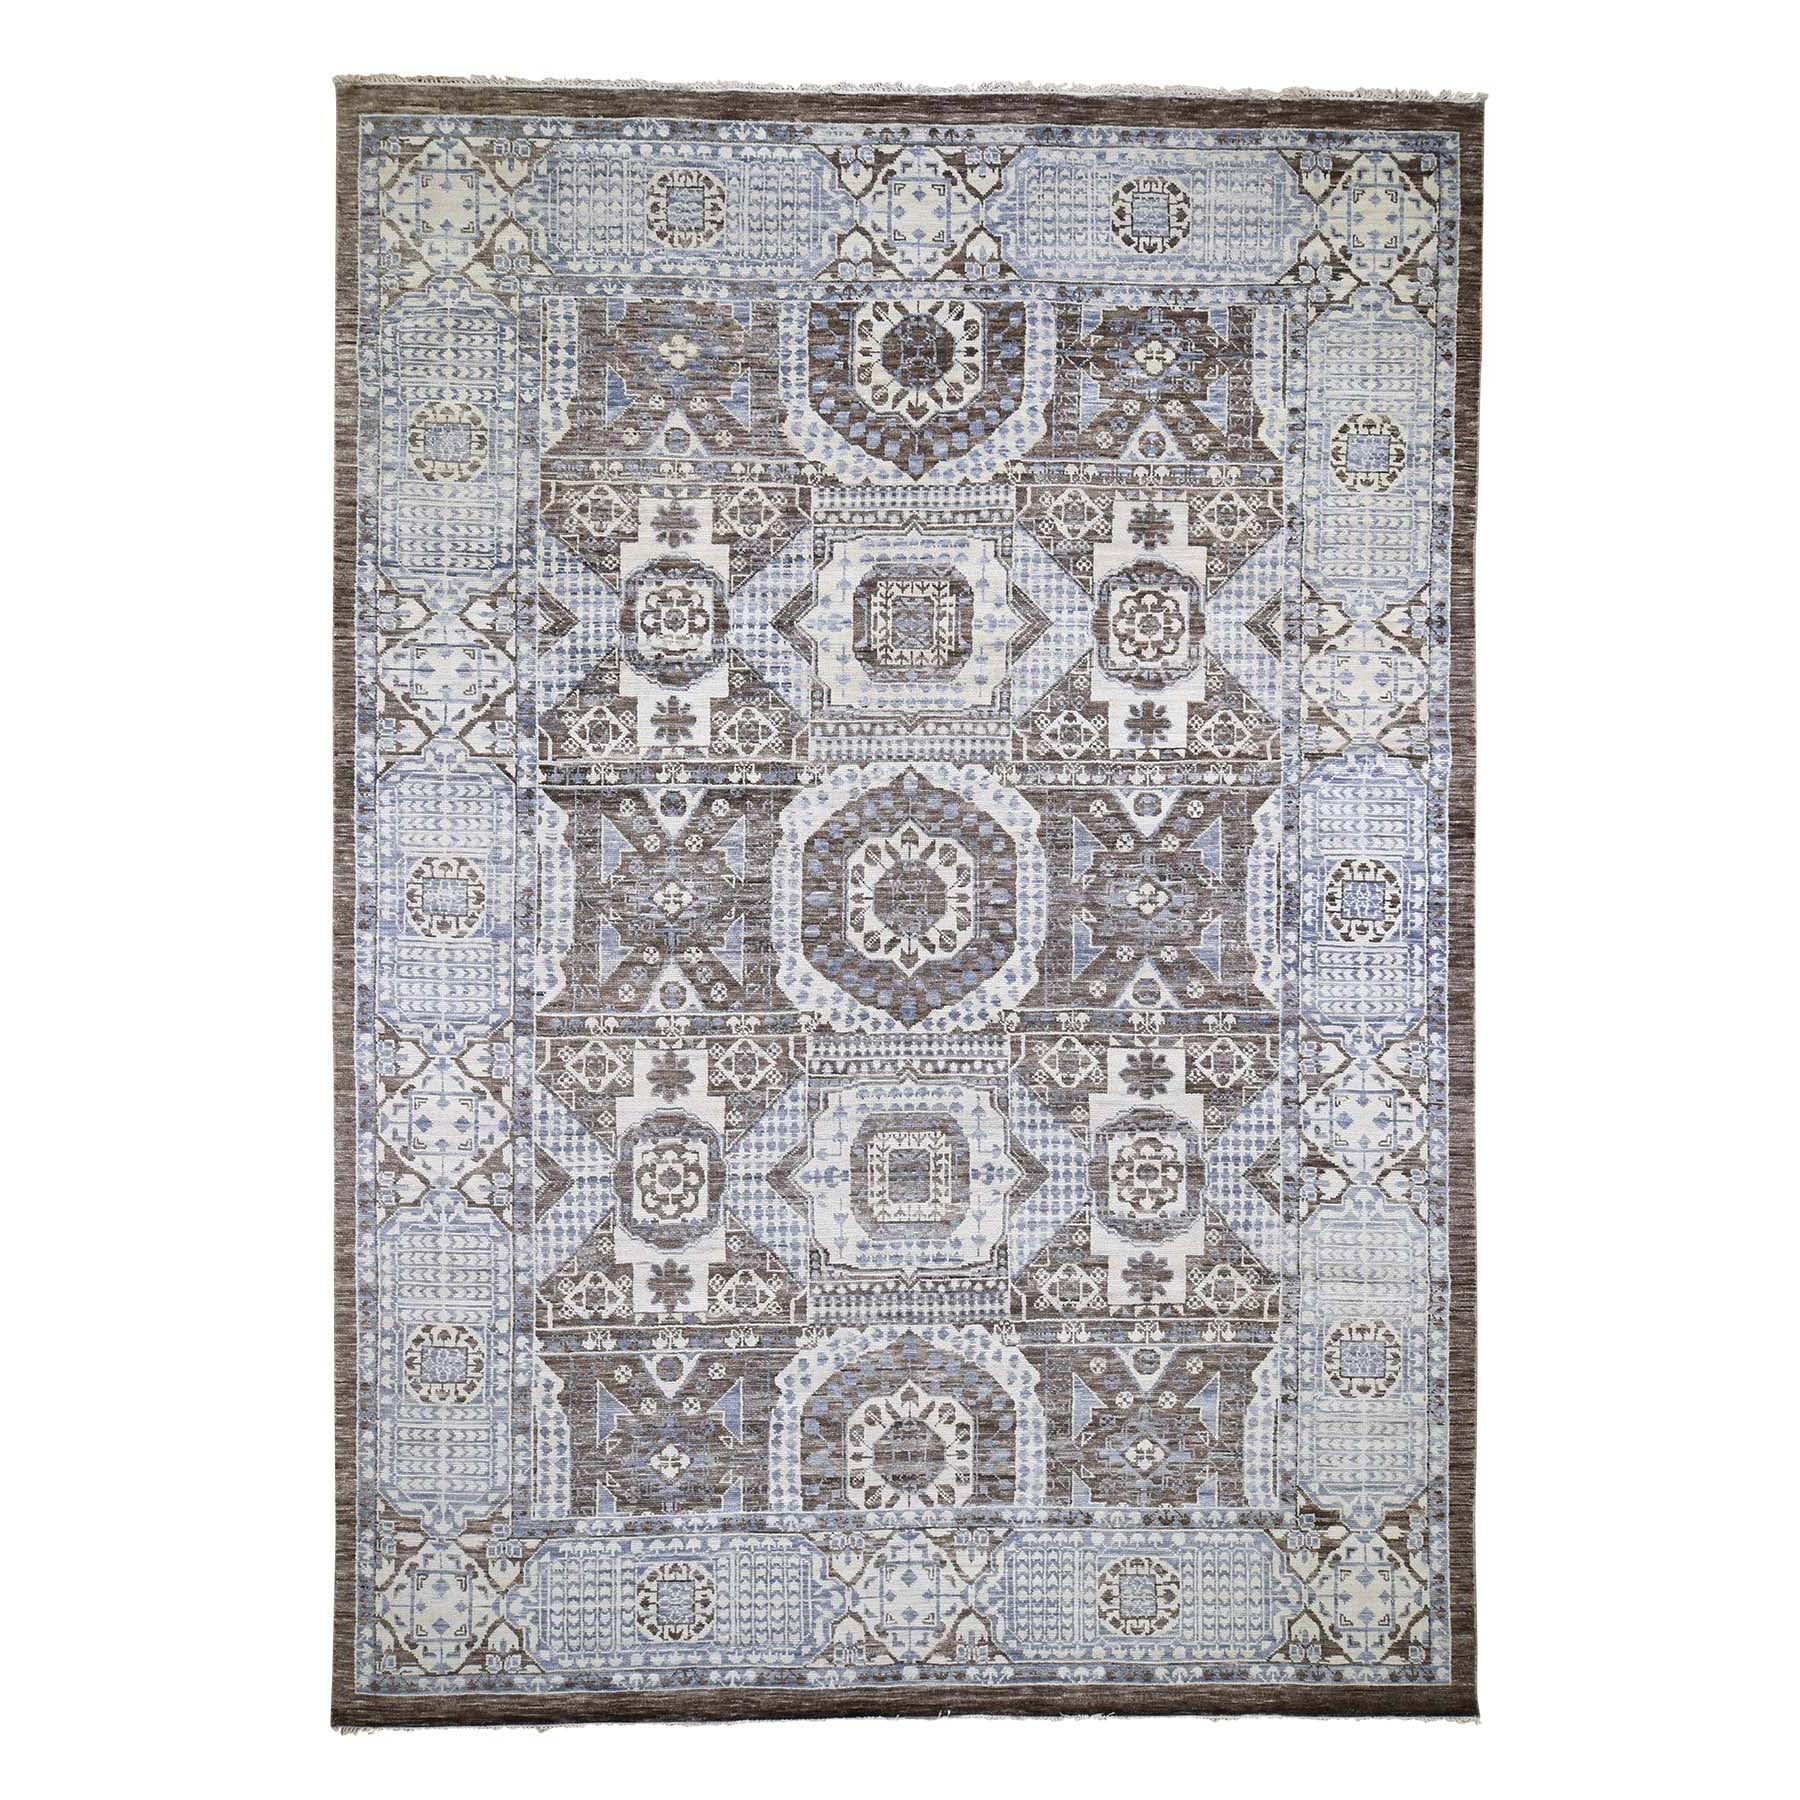 "Handmade Mamluk Rectangle Rug > Design# SH45892 > Size: 10'-2"" x 14'-5"" [ONLINE ONLY]"